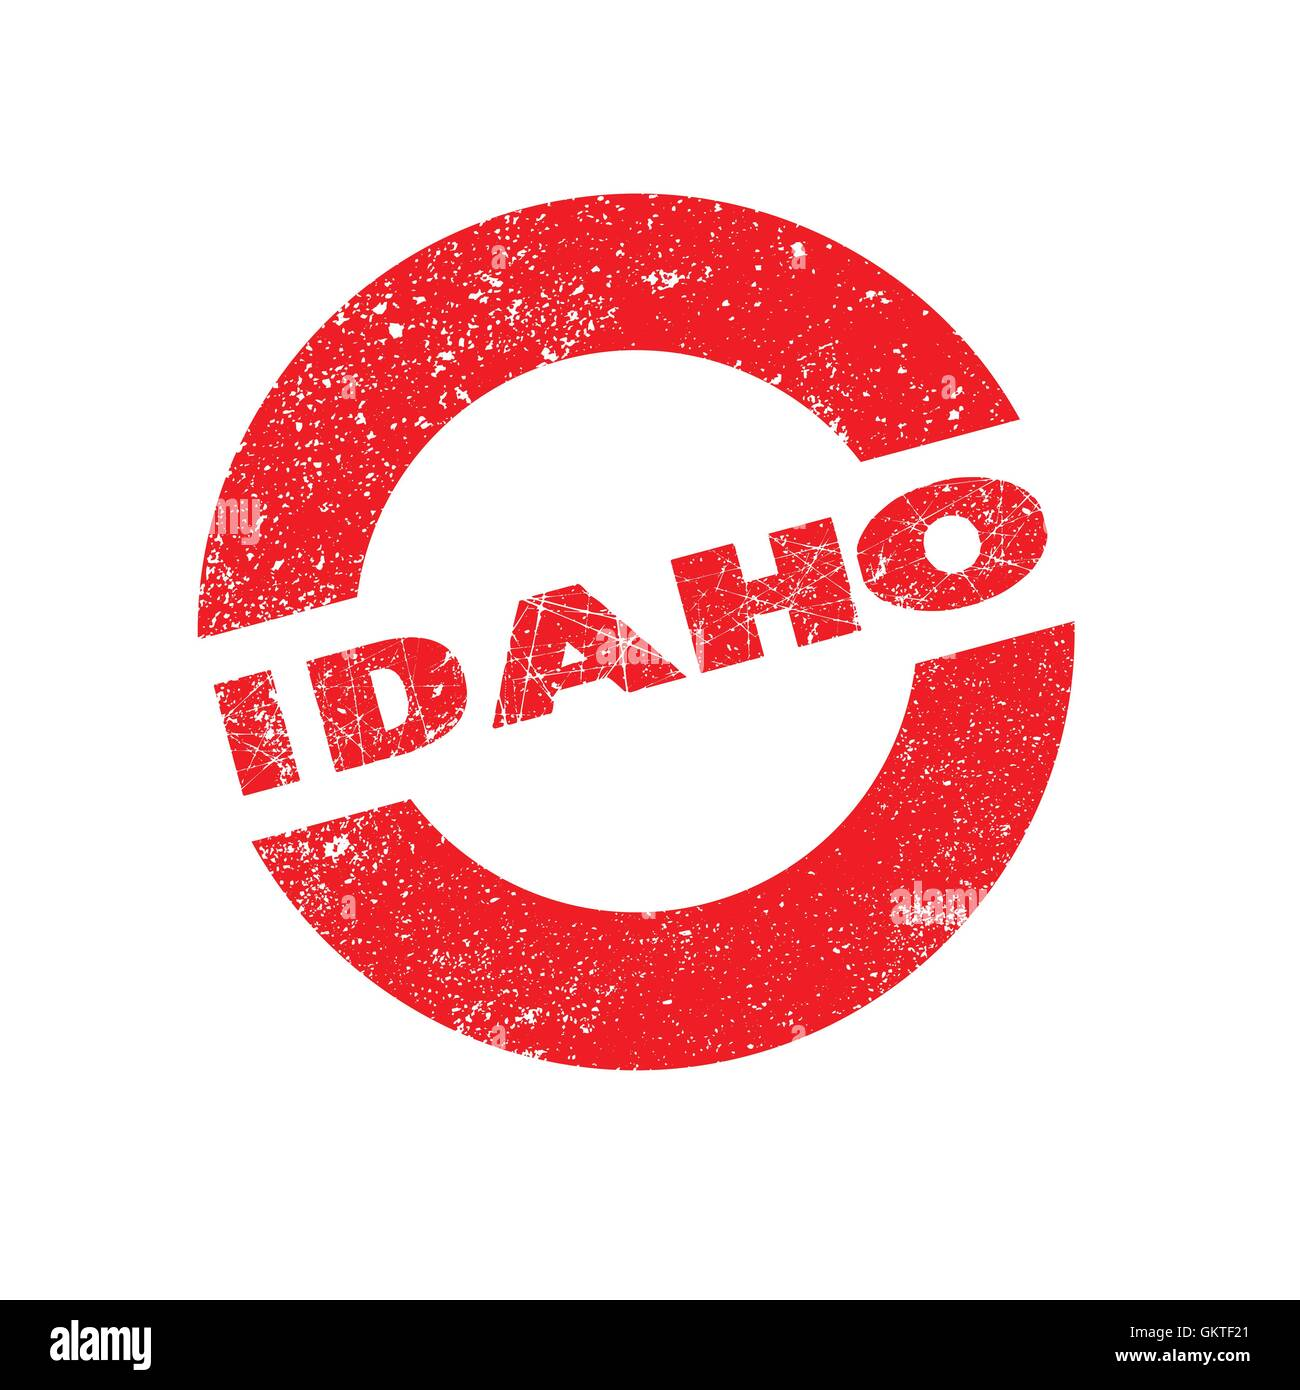 Rubber Ink Stamp Idaho - Stock Image